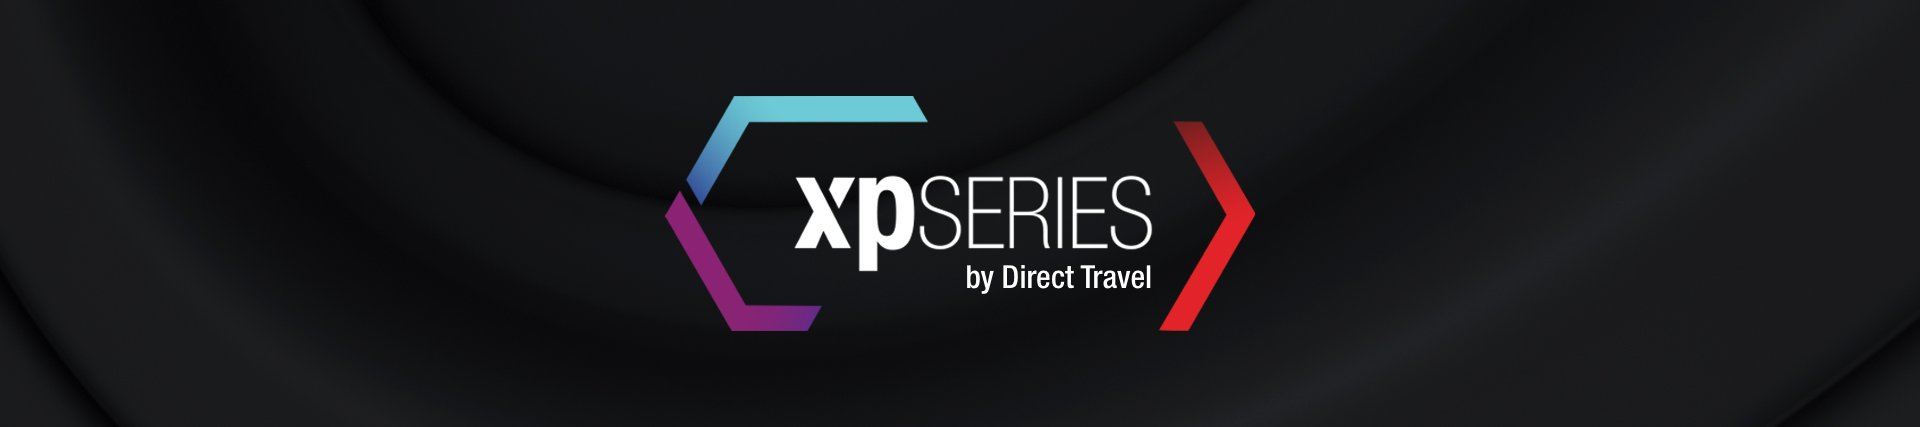 XPSeries by DT